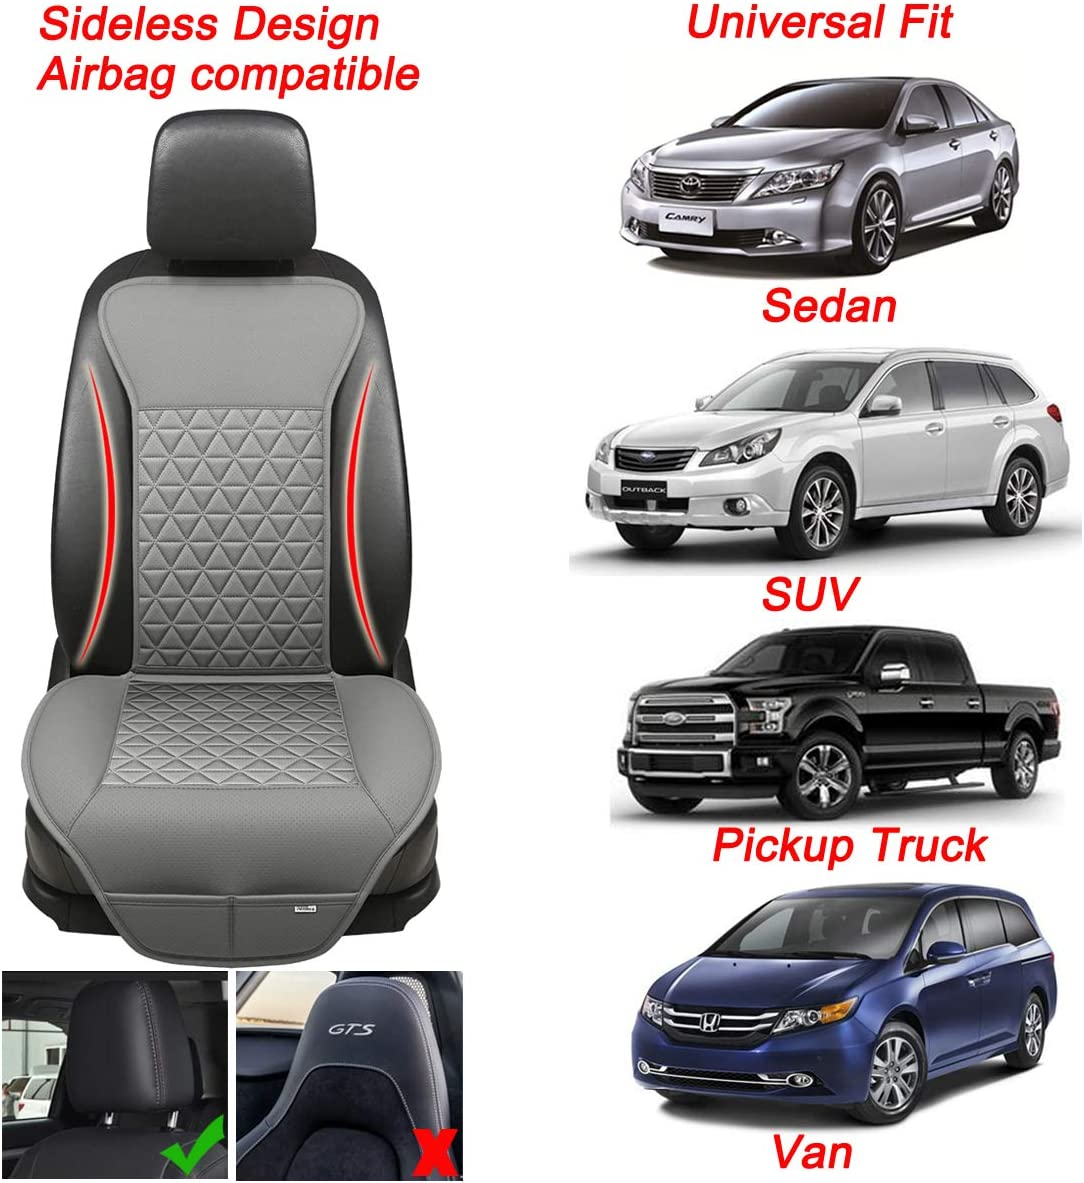 Black Panther 1 Piece Luxury PU Leather Front Car Seat Cover Protector Compatible with 95/% Cars Black Triangle Quilting Design Sedan//SUV//Pickup Truck//Van//MPV